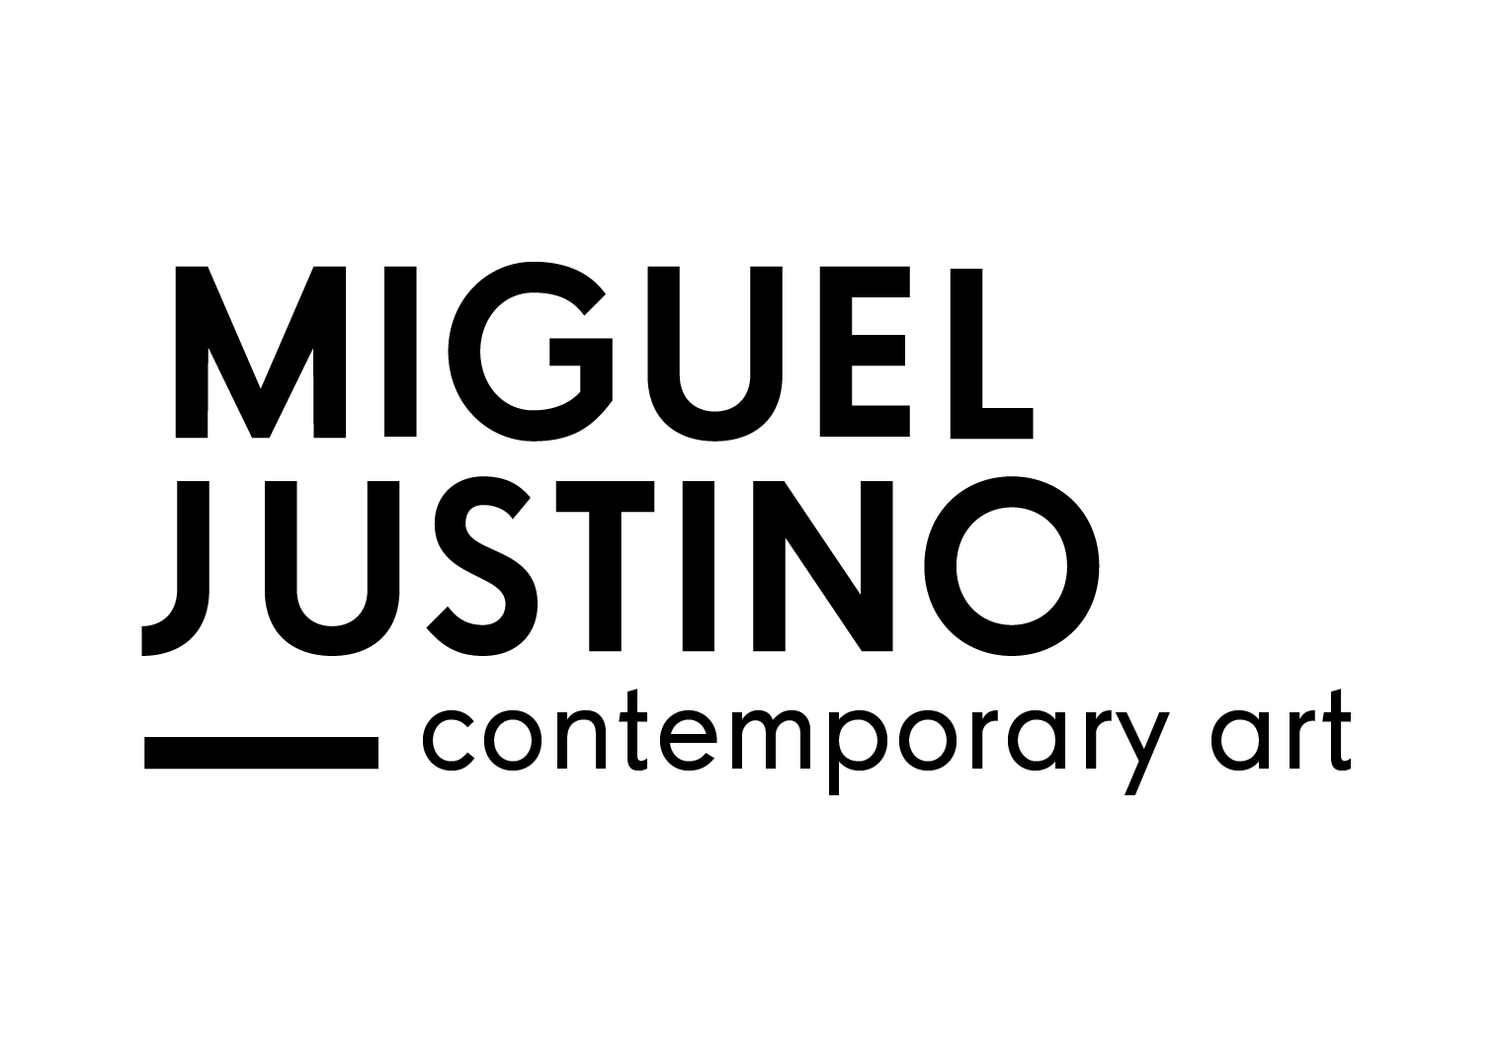 Miguel Justino Contemporary Art